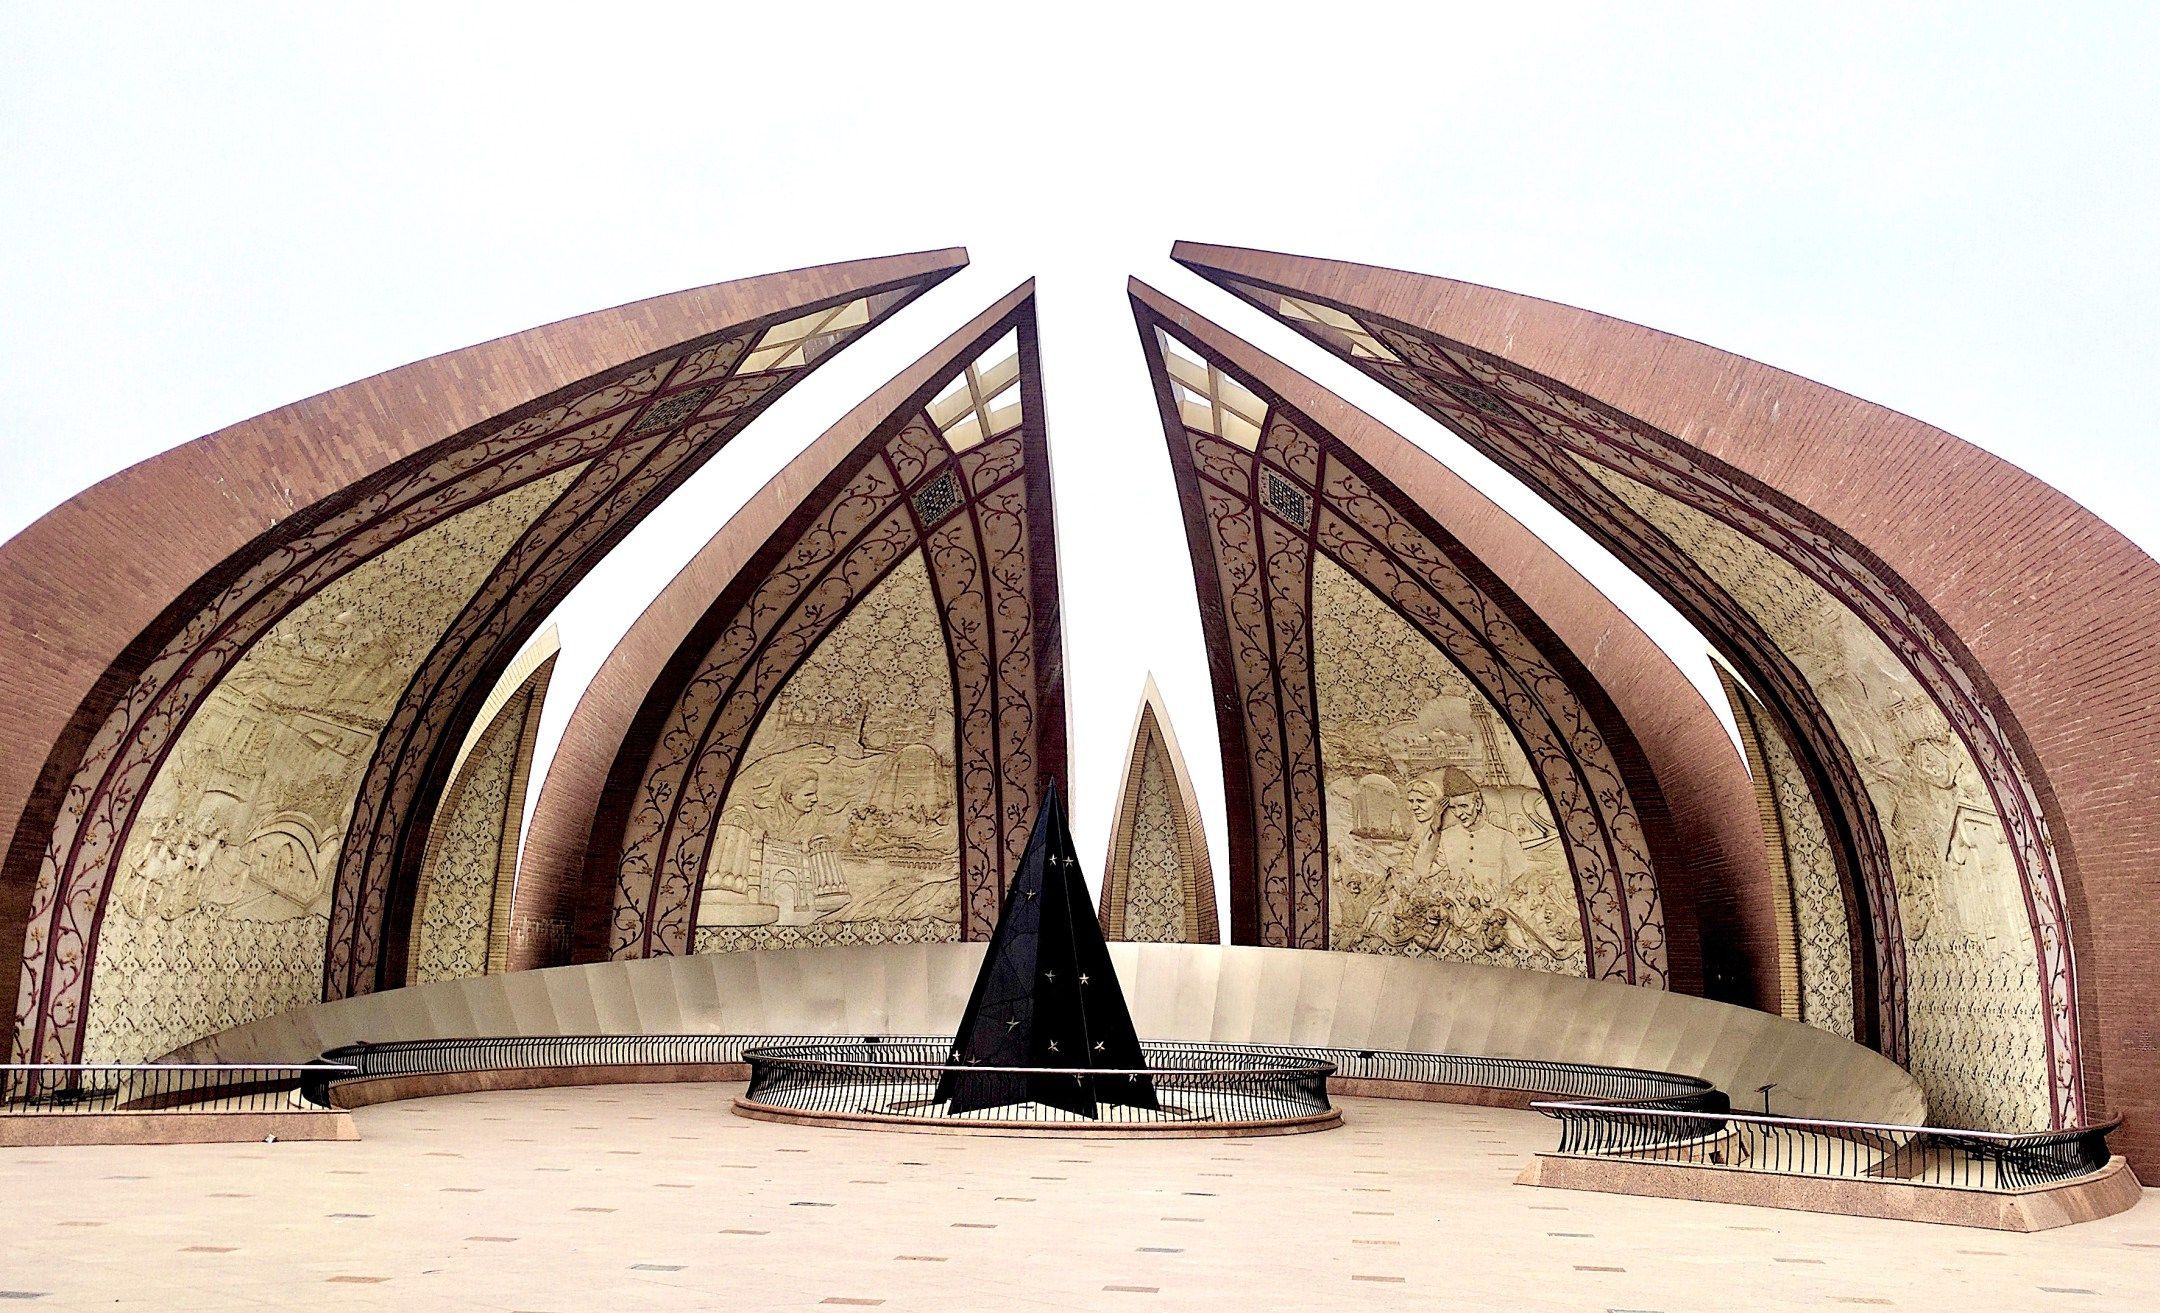 Islamabad Travel Guide Travel Travel Guide Monument